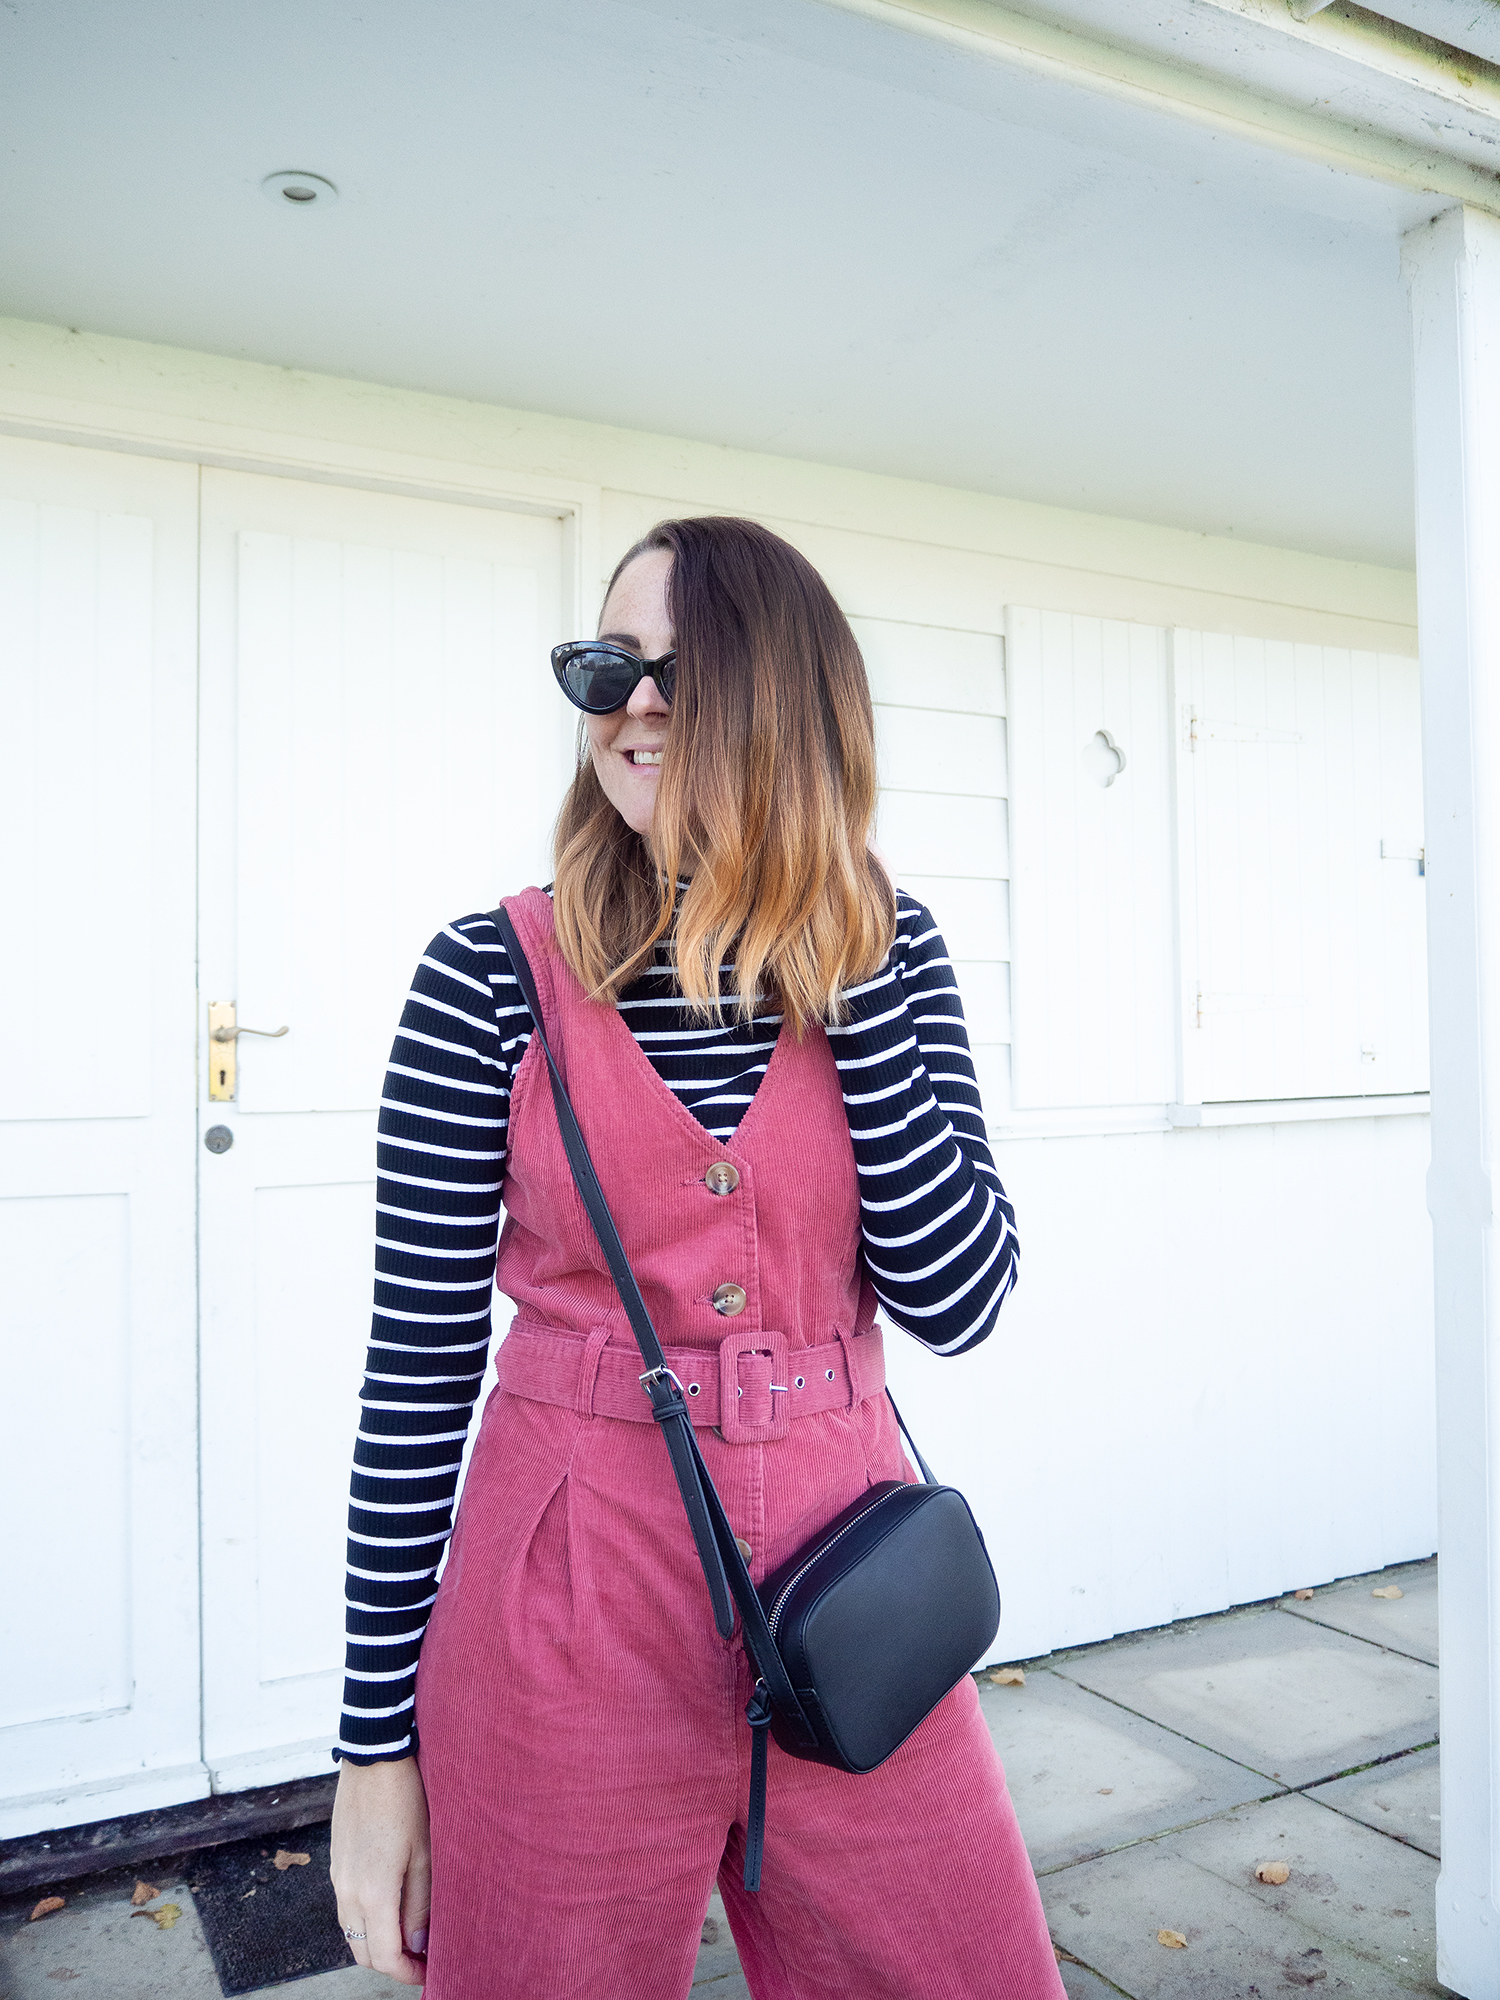 pink jumpsuit with sriped top underneath